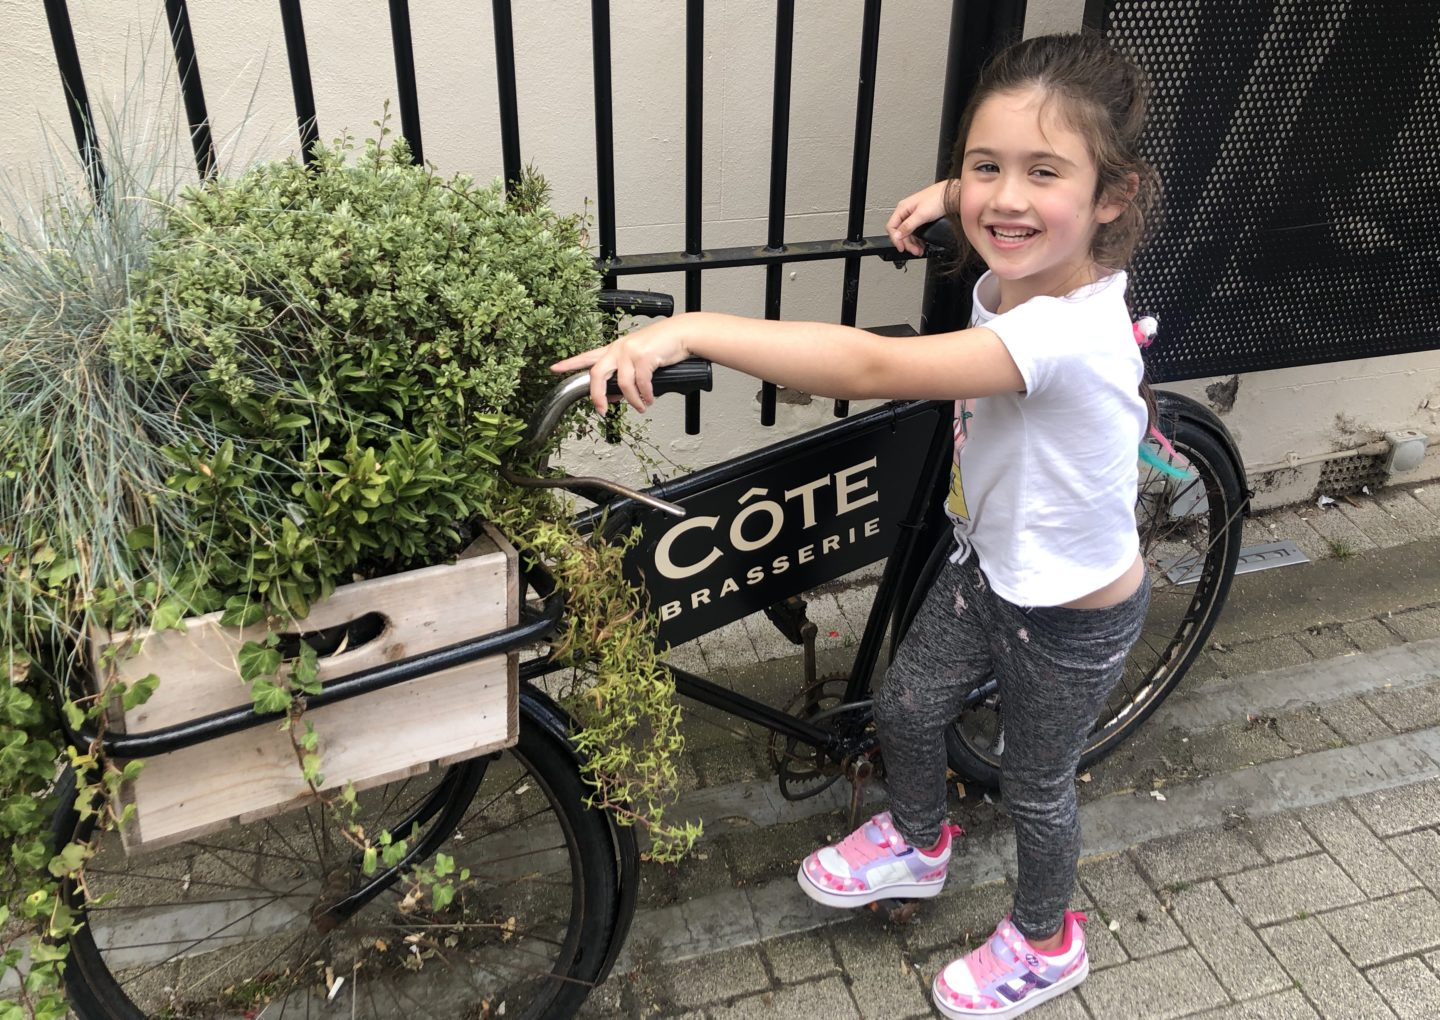 Cote Brasserie – REVIEW – a Family Meal Out